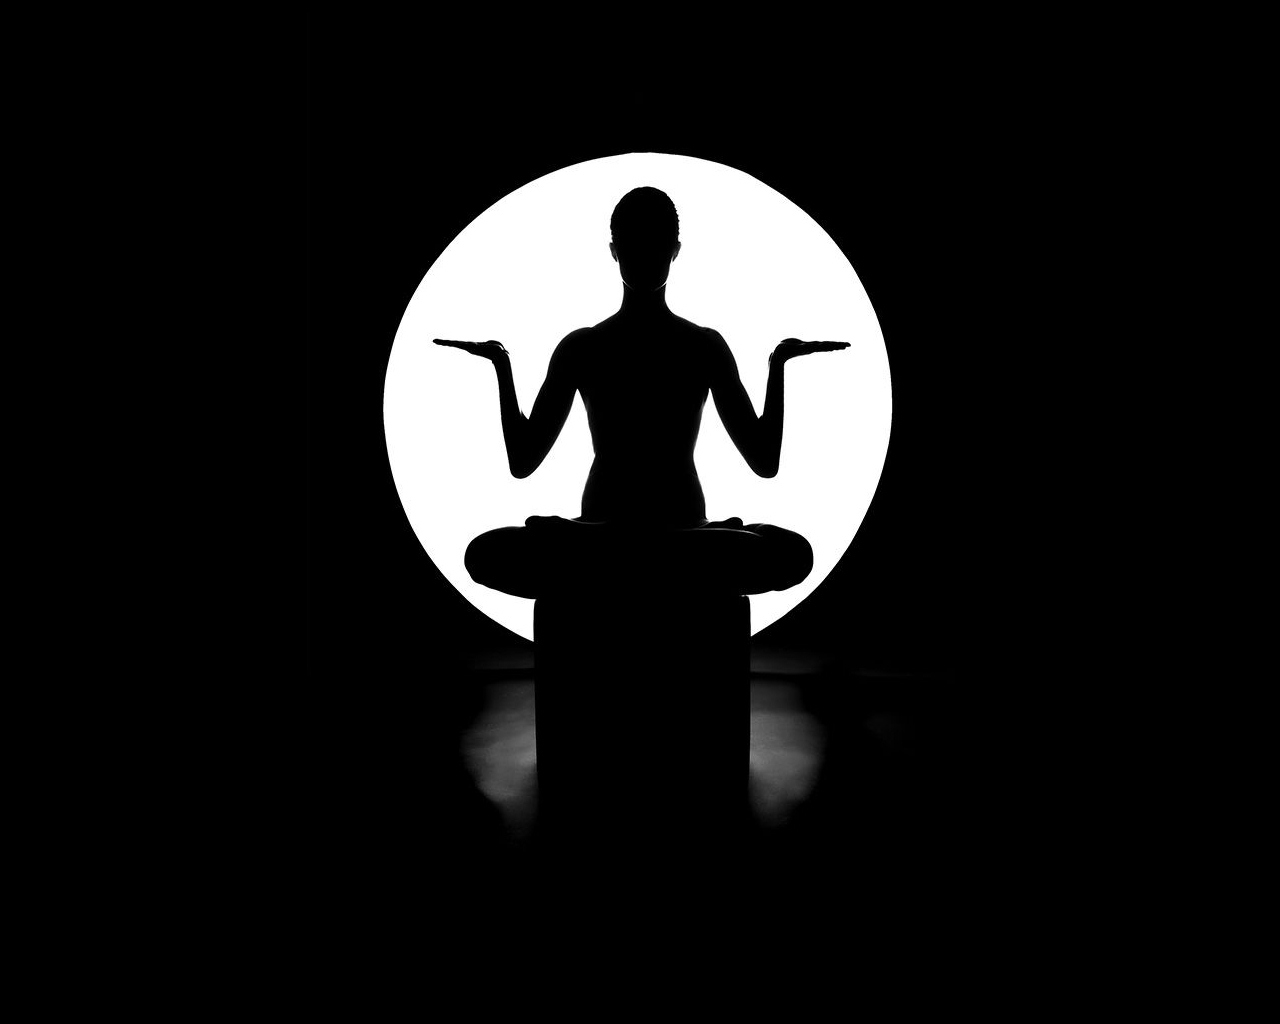 Yoga man in lotus pose - black and white wallpaper